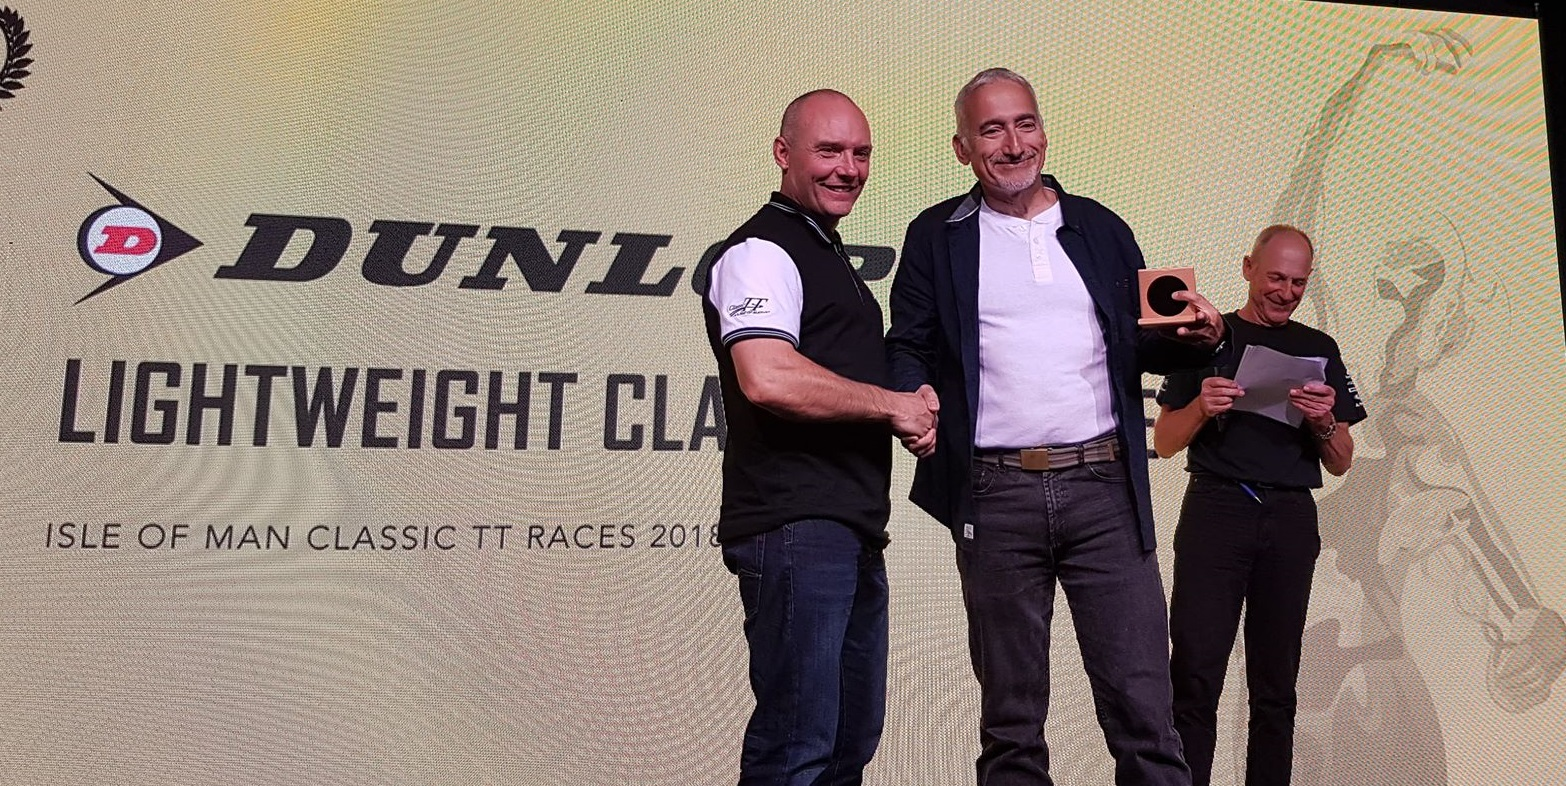 Collecting 2018 Classic TT Lightweight finishers medal from Keith Amor